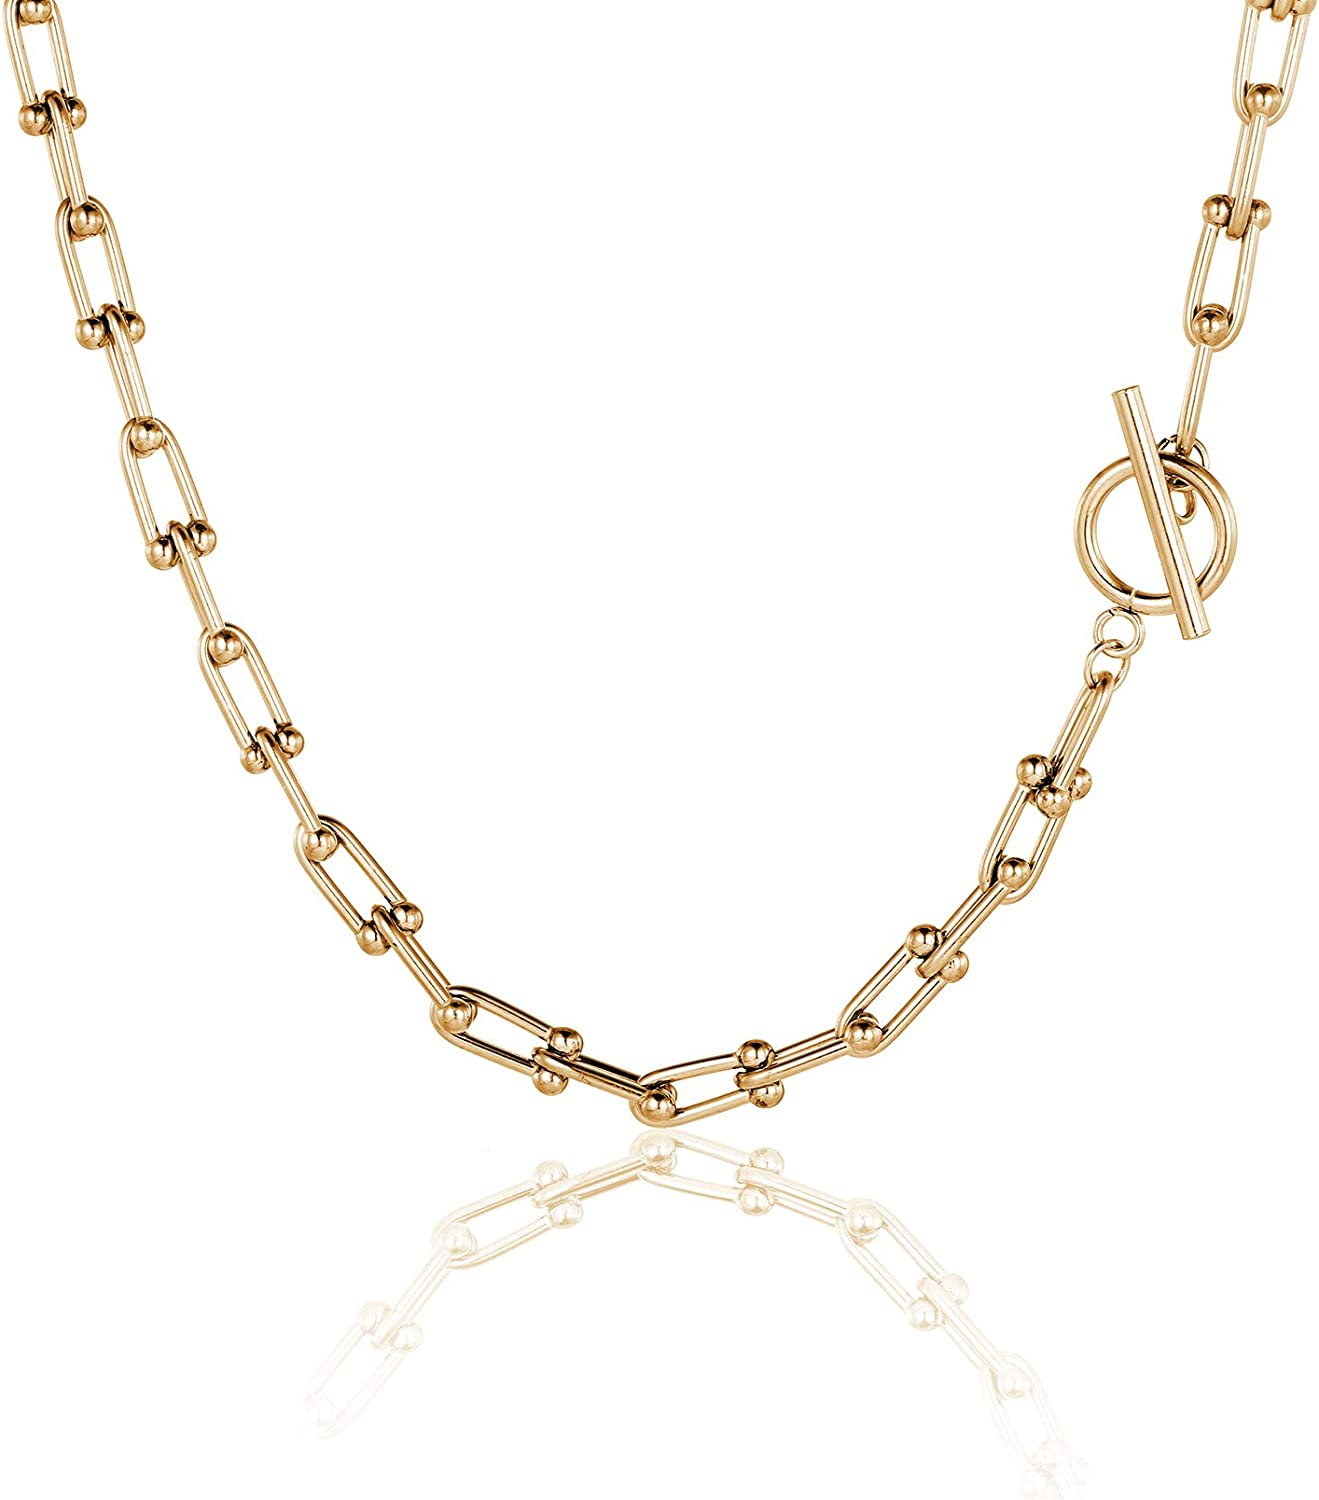 ivyAnan Jewellery Chain Necklace Link U Shape Stick Gold Stainless Steel for Women